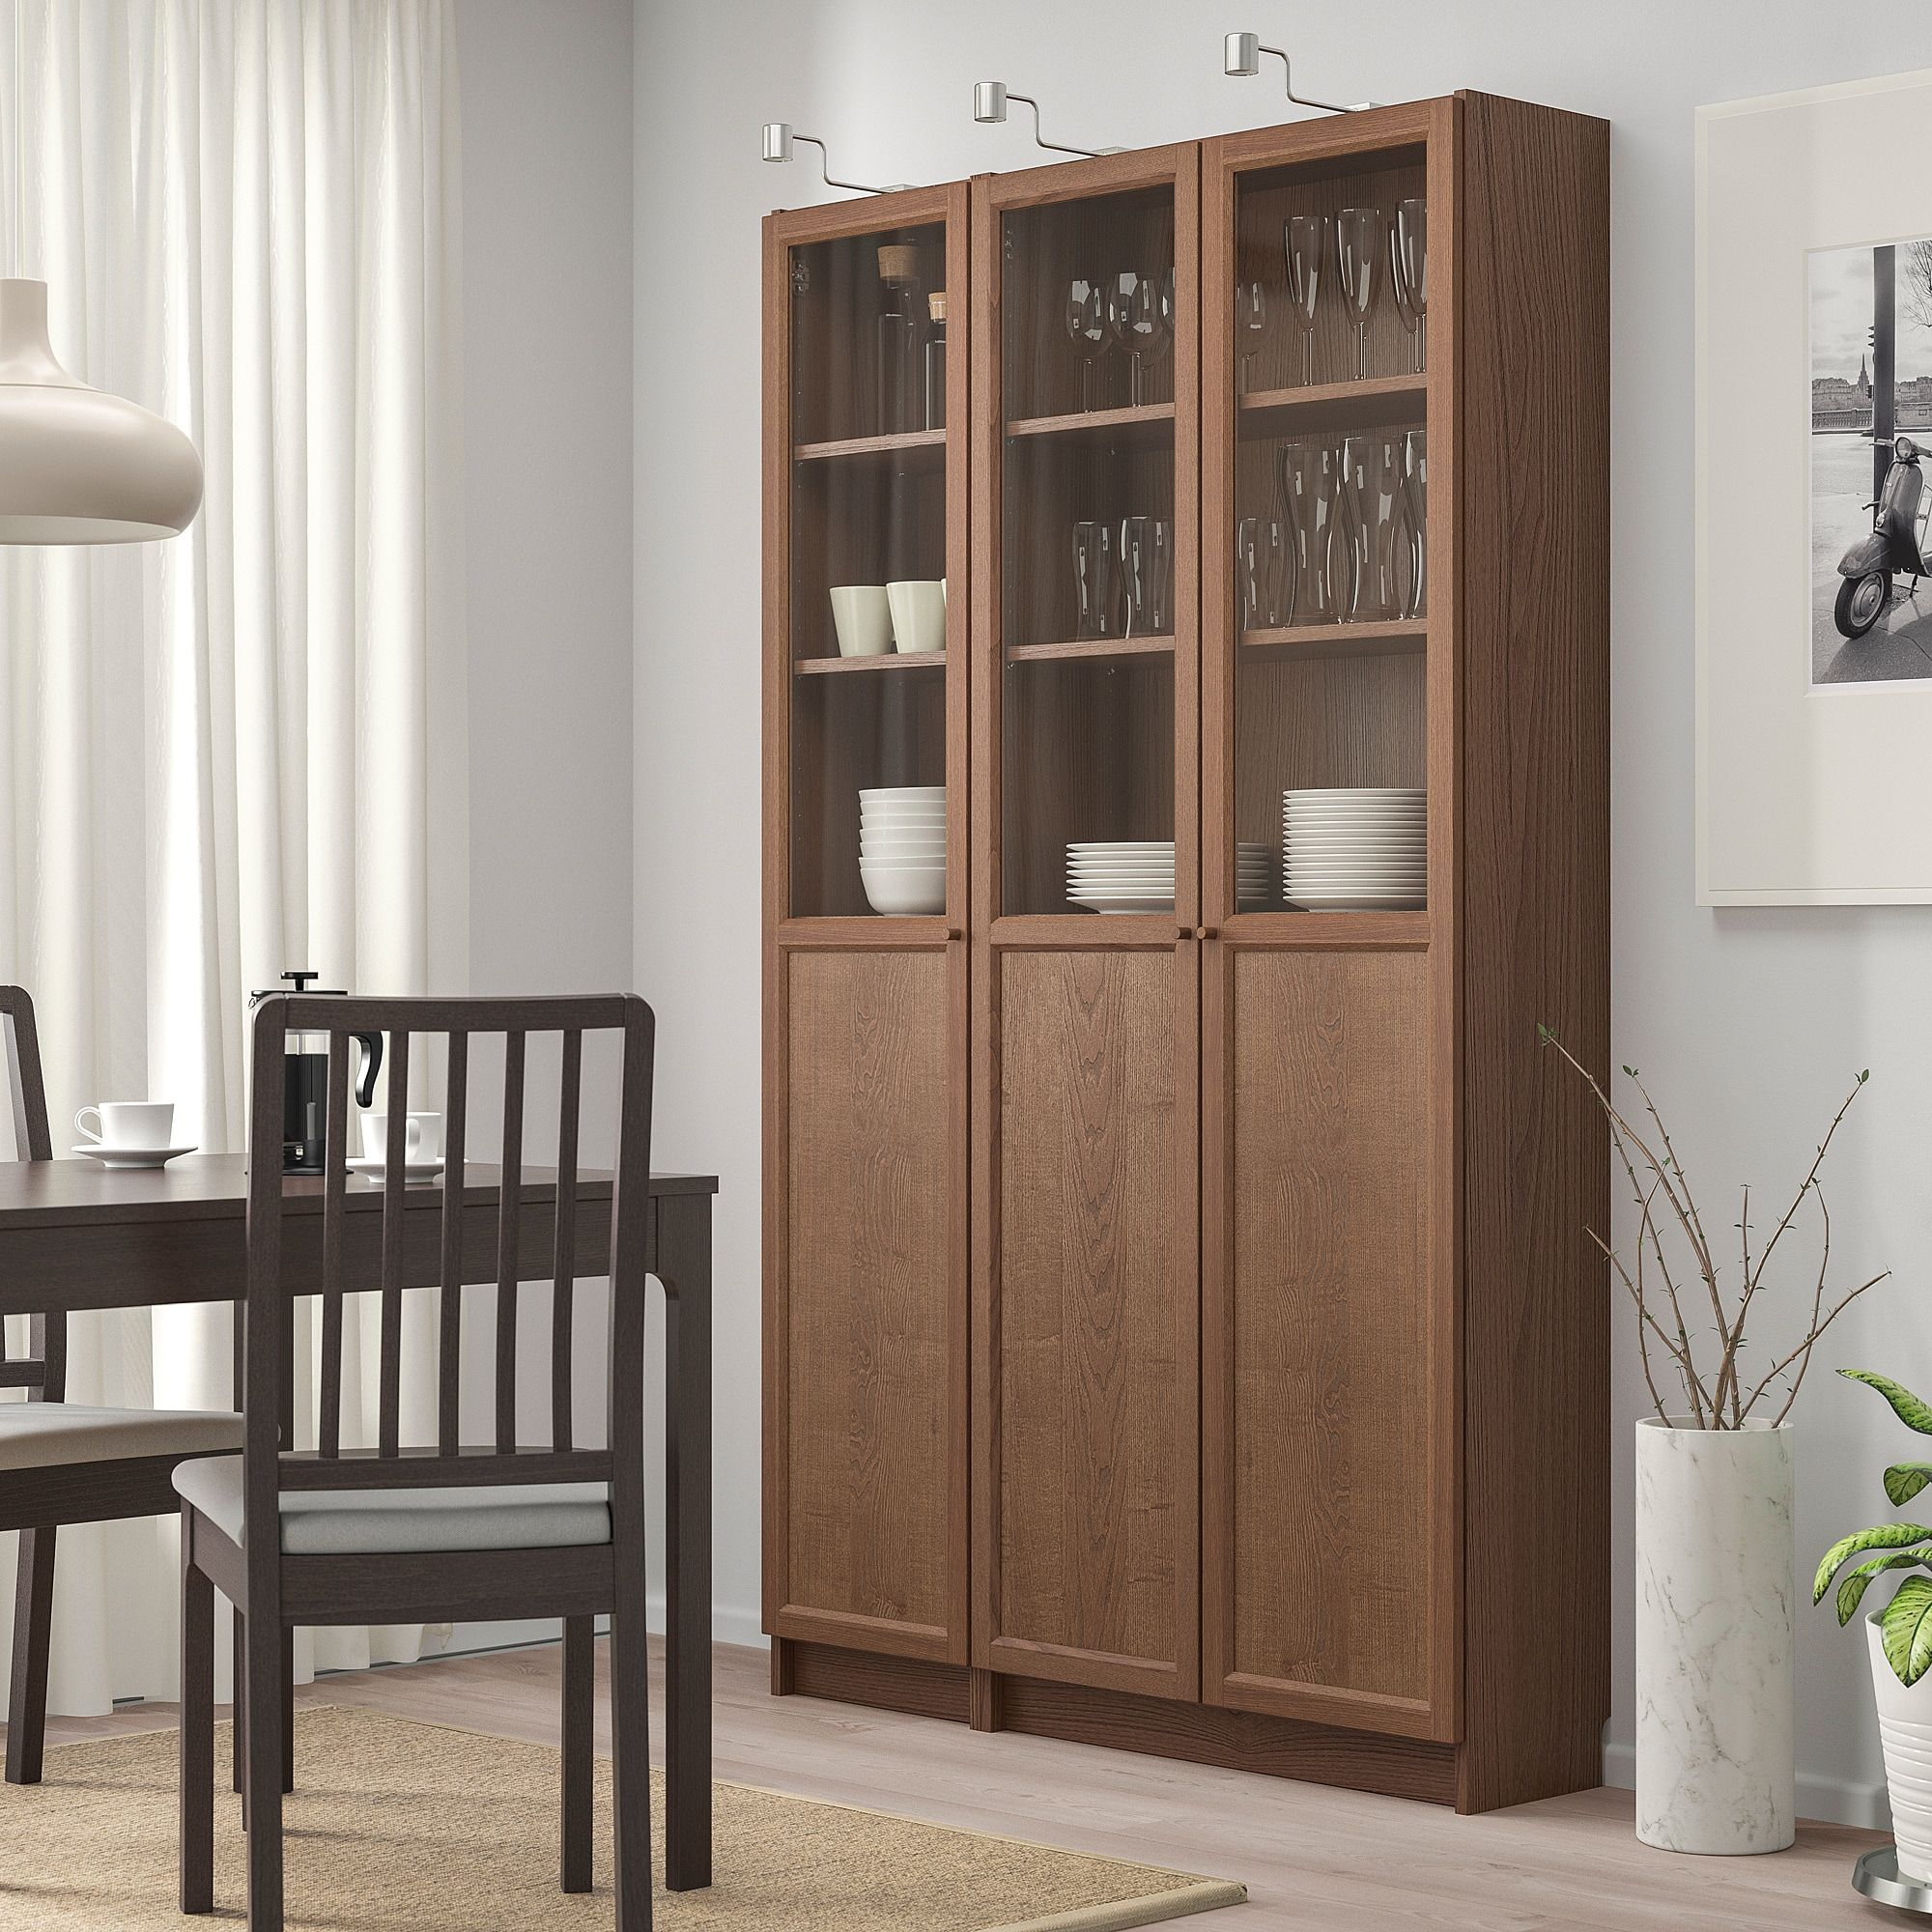 Furniture And Home Furnishings With Images Glass Door Billy Bookcase Ikea